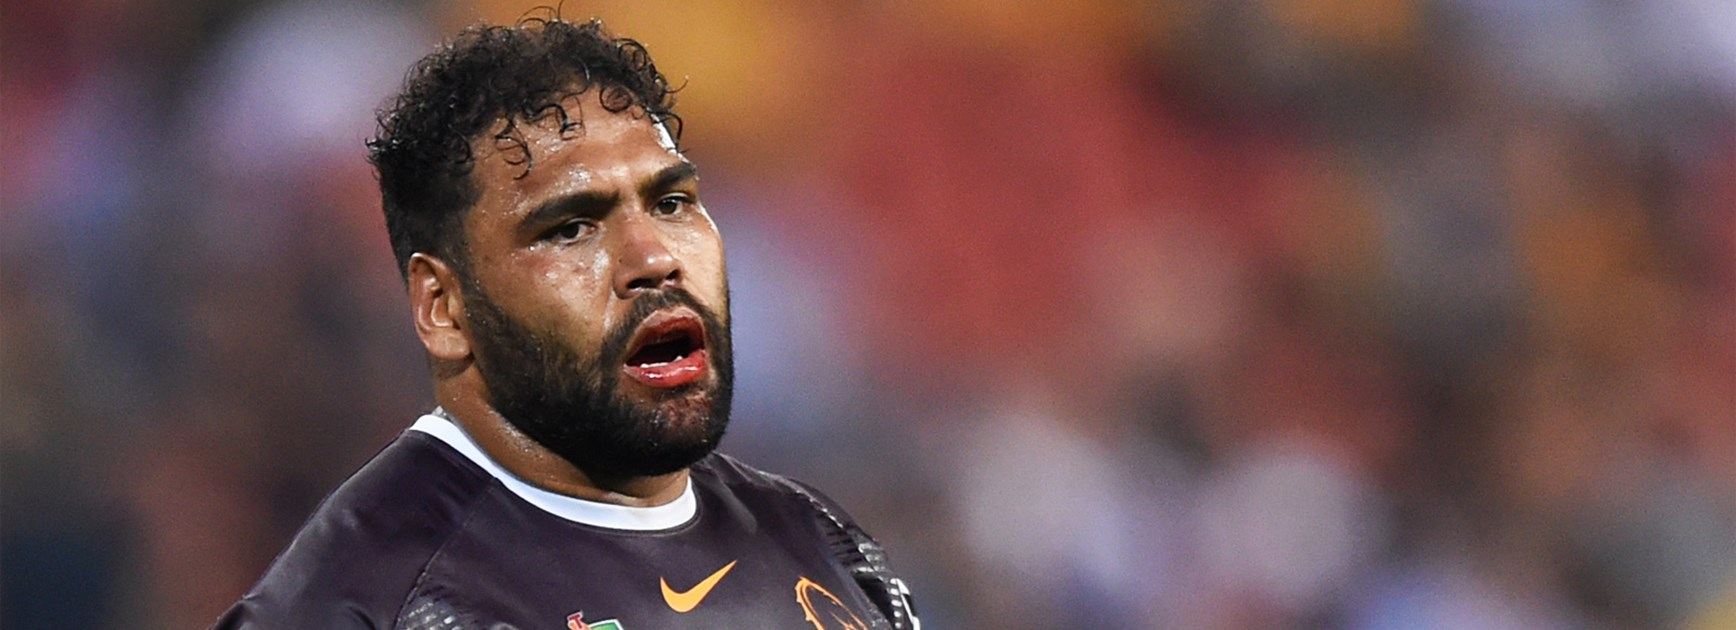 Sam Thaiday is facing a dangerous throw charge.